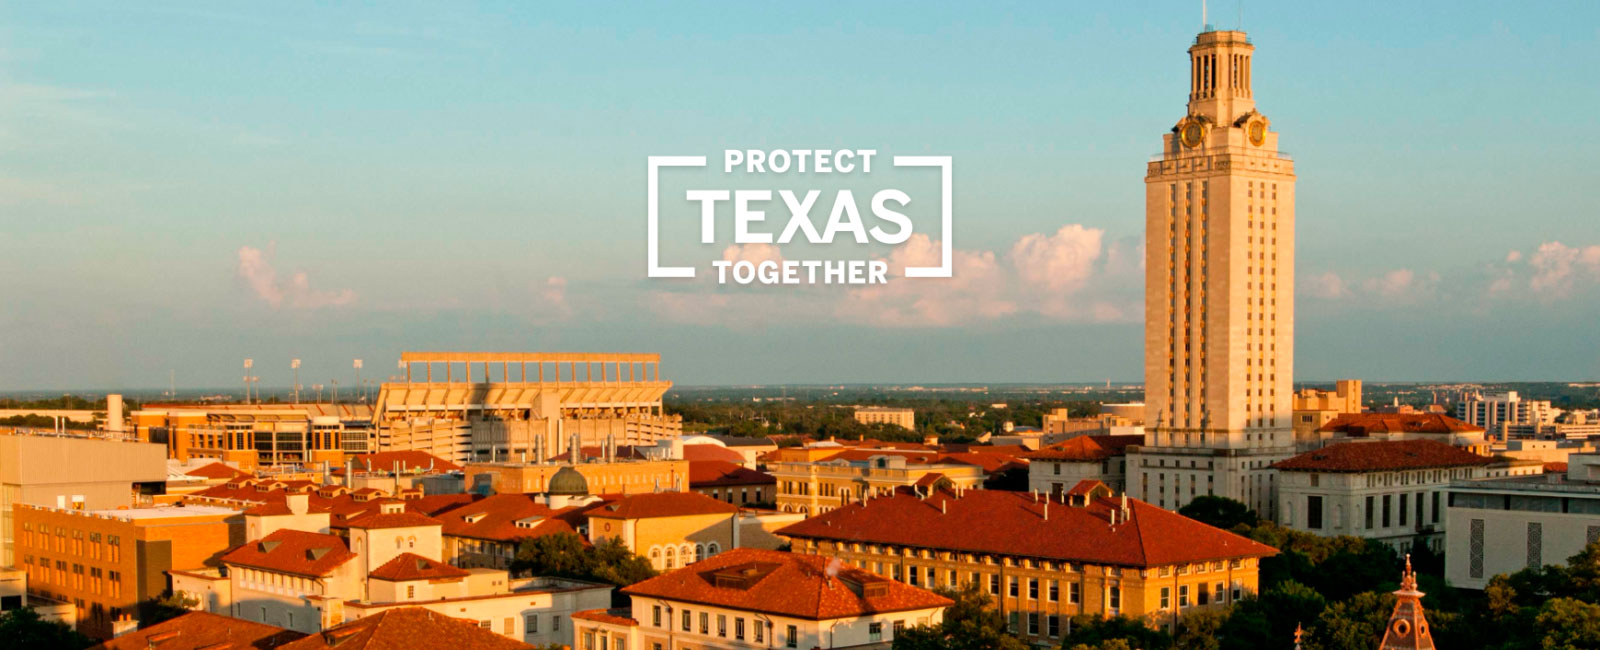 scene of campus buildings with Protect Texas Together text imposed